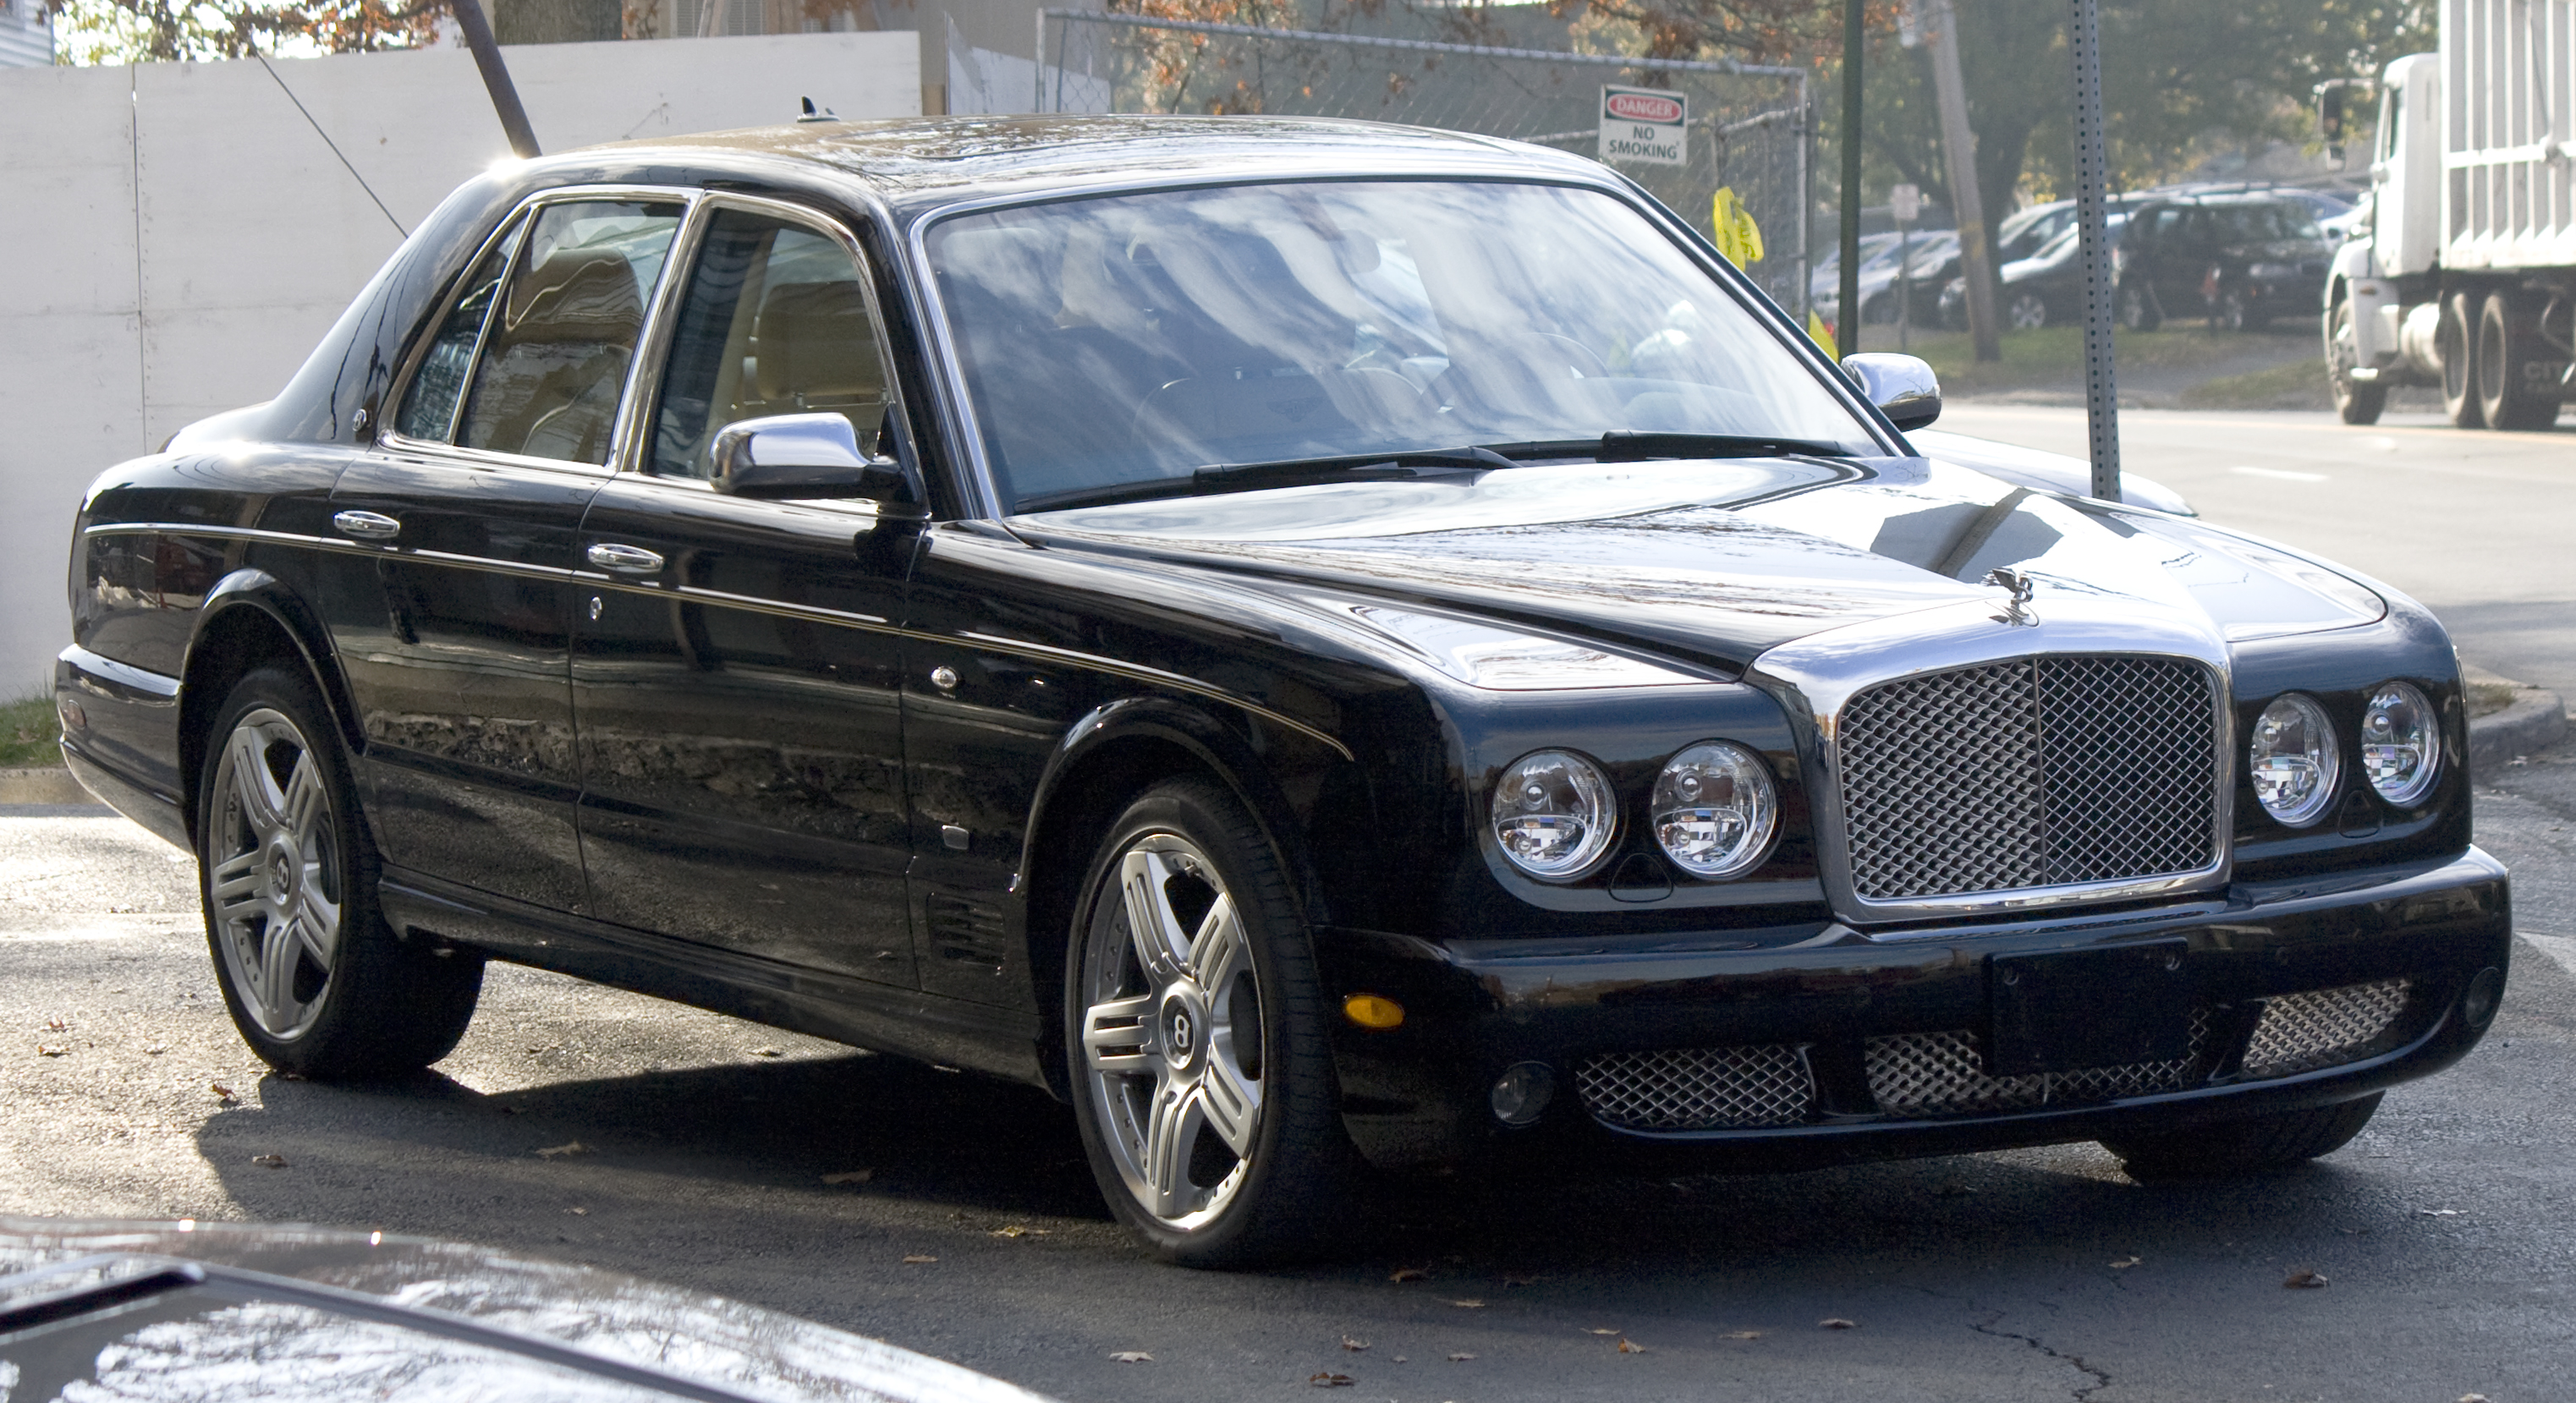 File2009 bentley arnage final seriesg wikimedia commons file2009 bentley arnage final seriesg vanachro Image collections